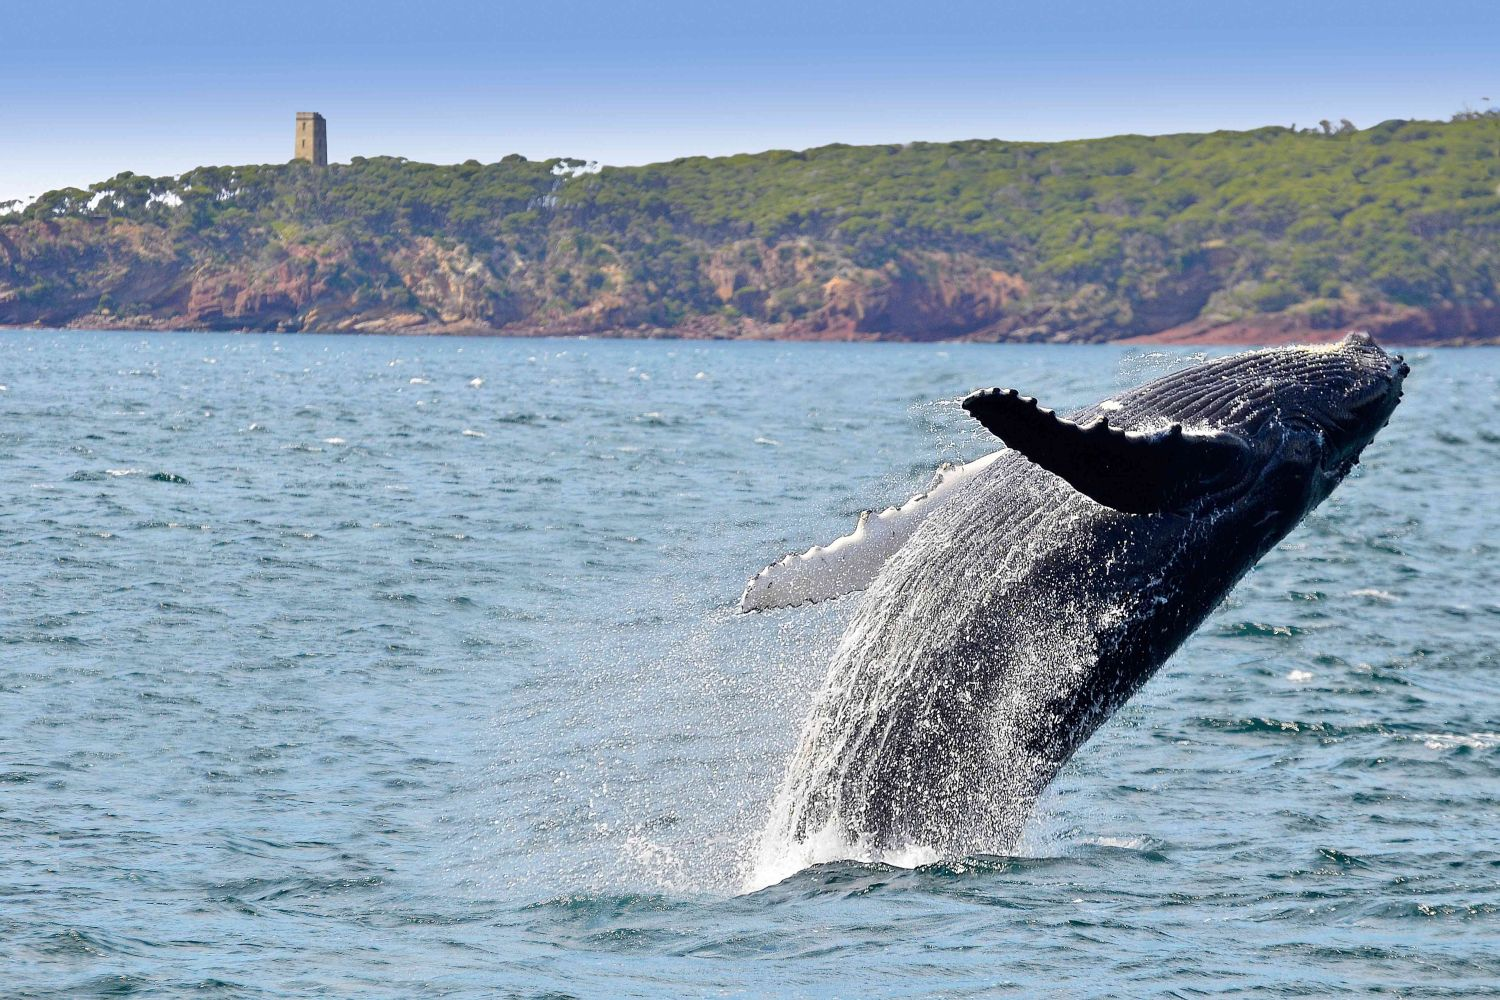 Whale Breaching off the coast of Eden, with Boyds Tower in the background.